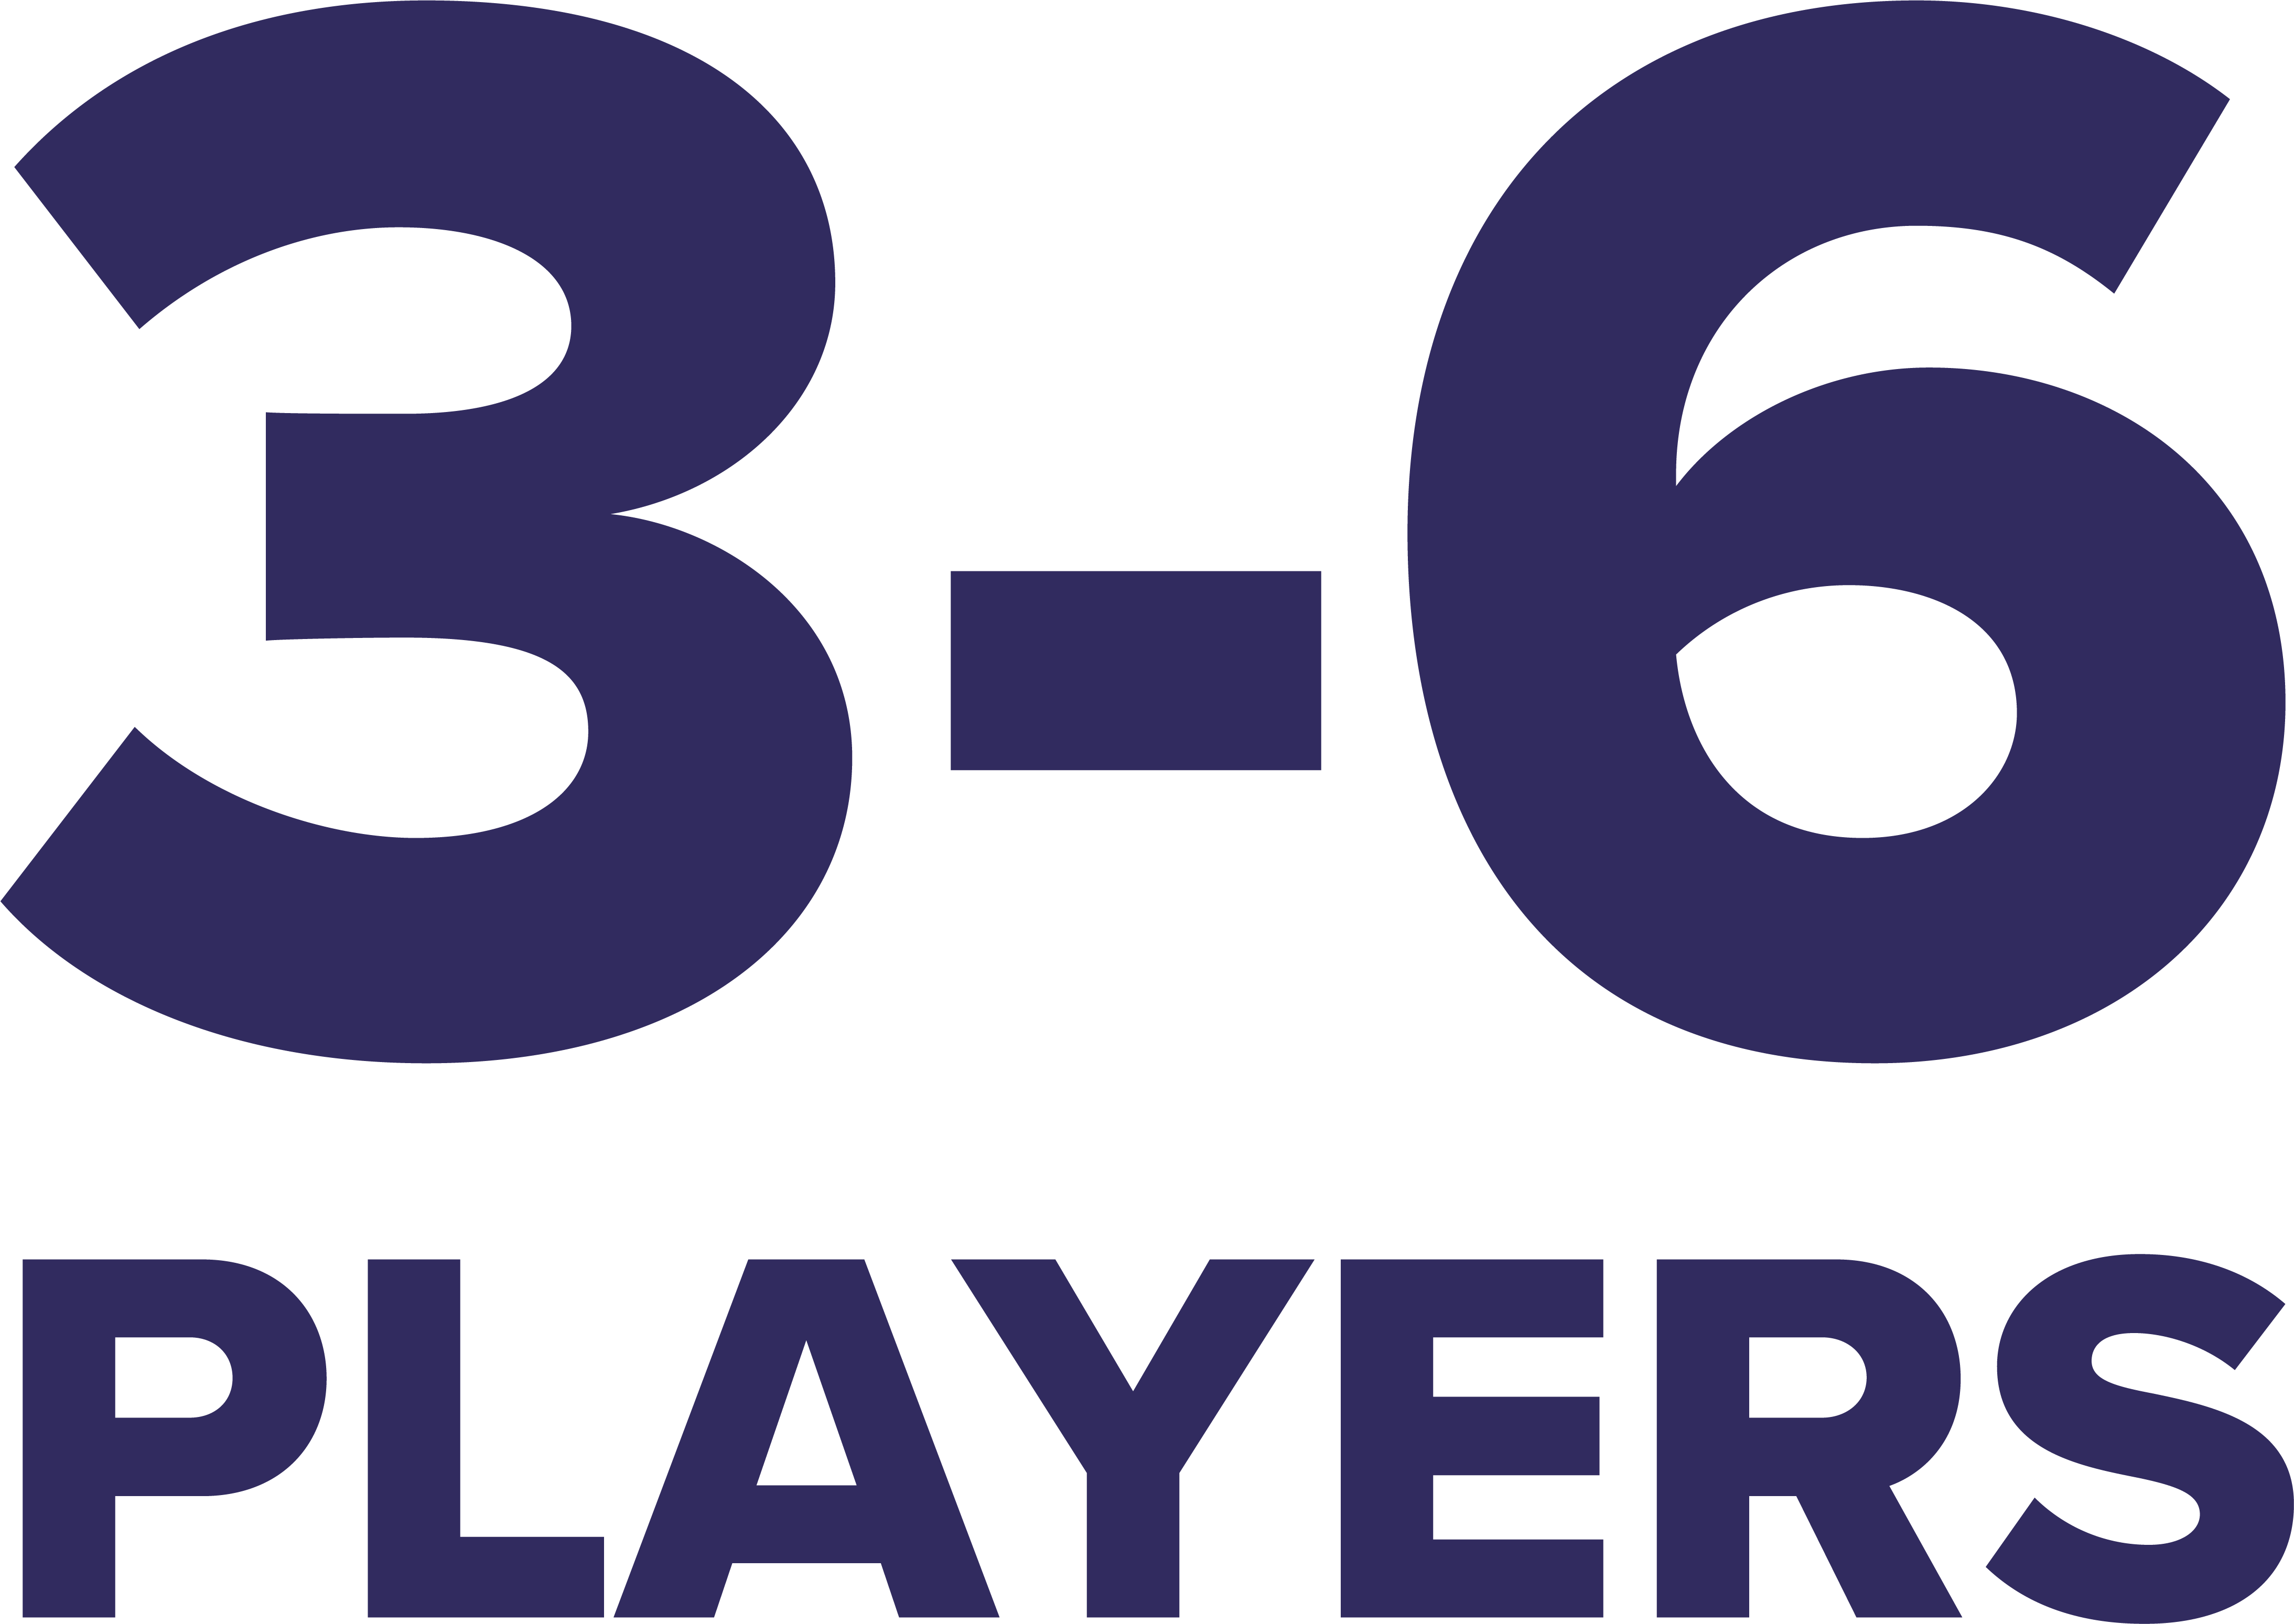 3-6 Players